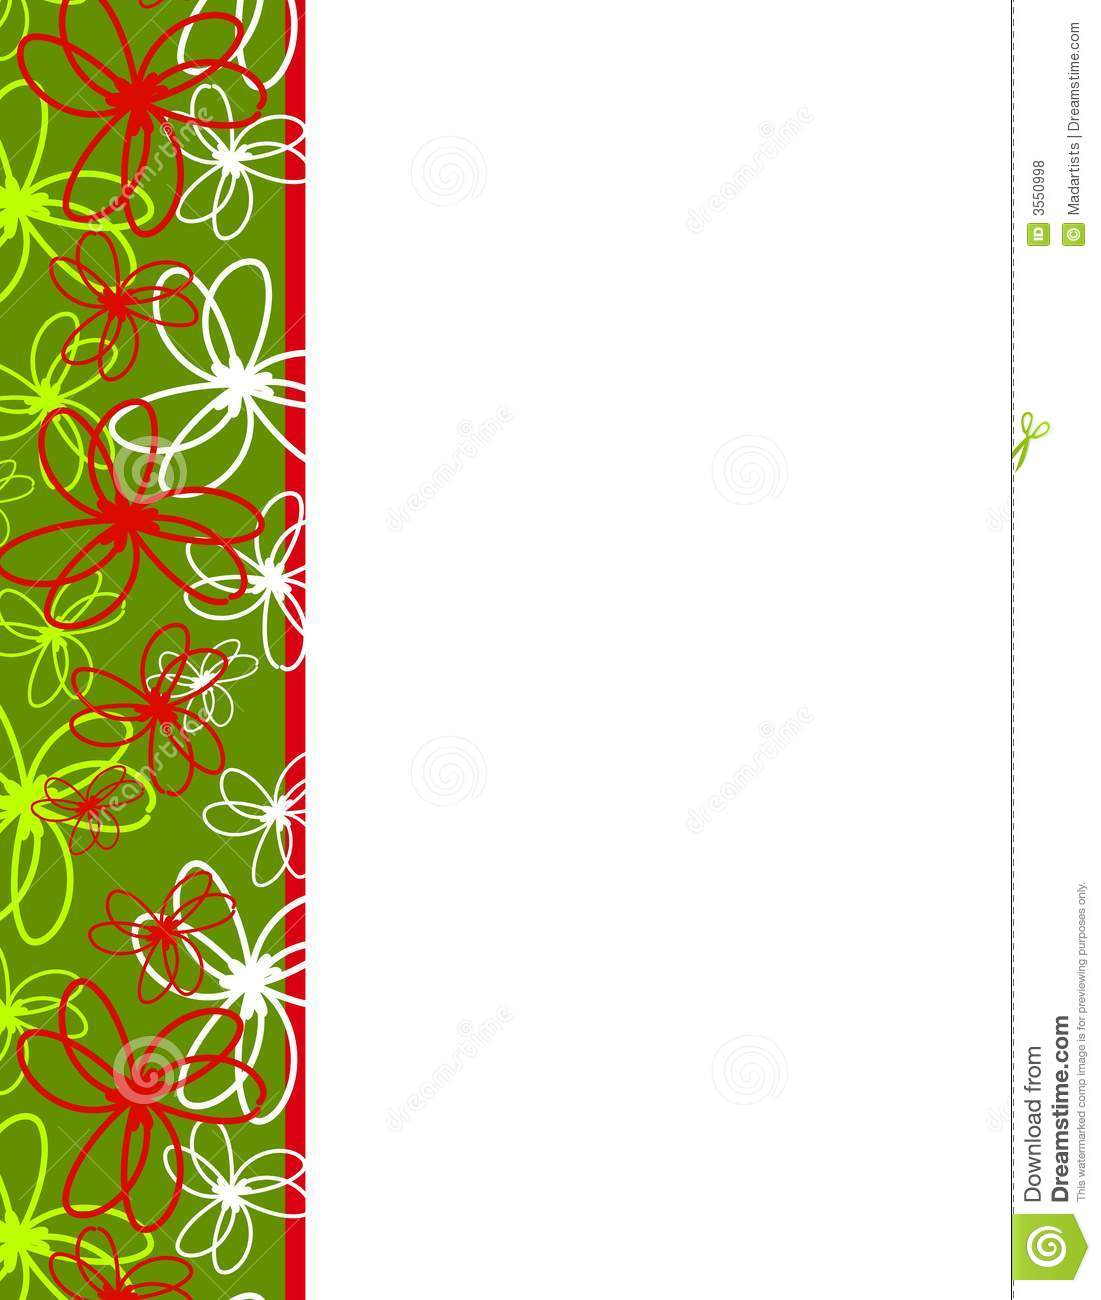 artsy ribbons christmas border royalty free stock photos